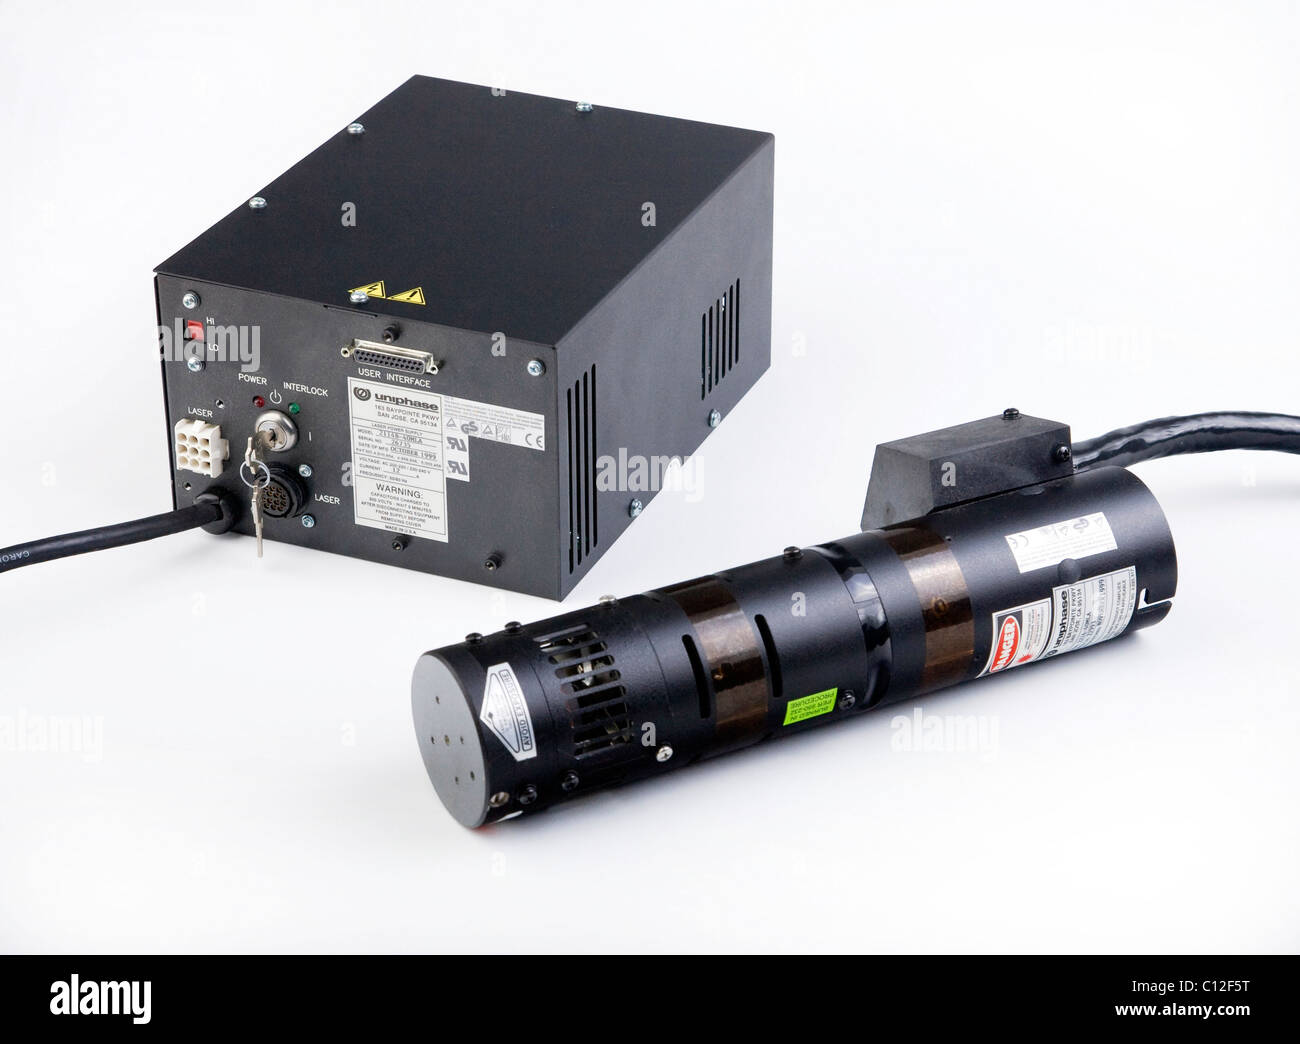 air cooled argon gas laser head output 40mW 457-512nm multiline wavelengths with power supply - Stock Image